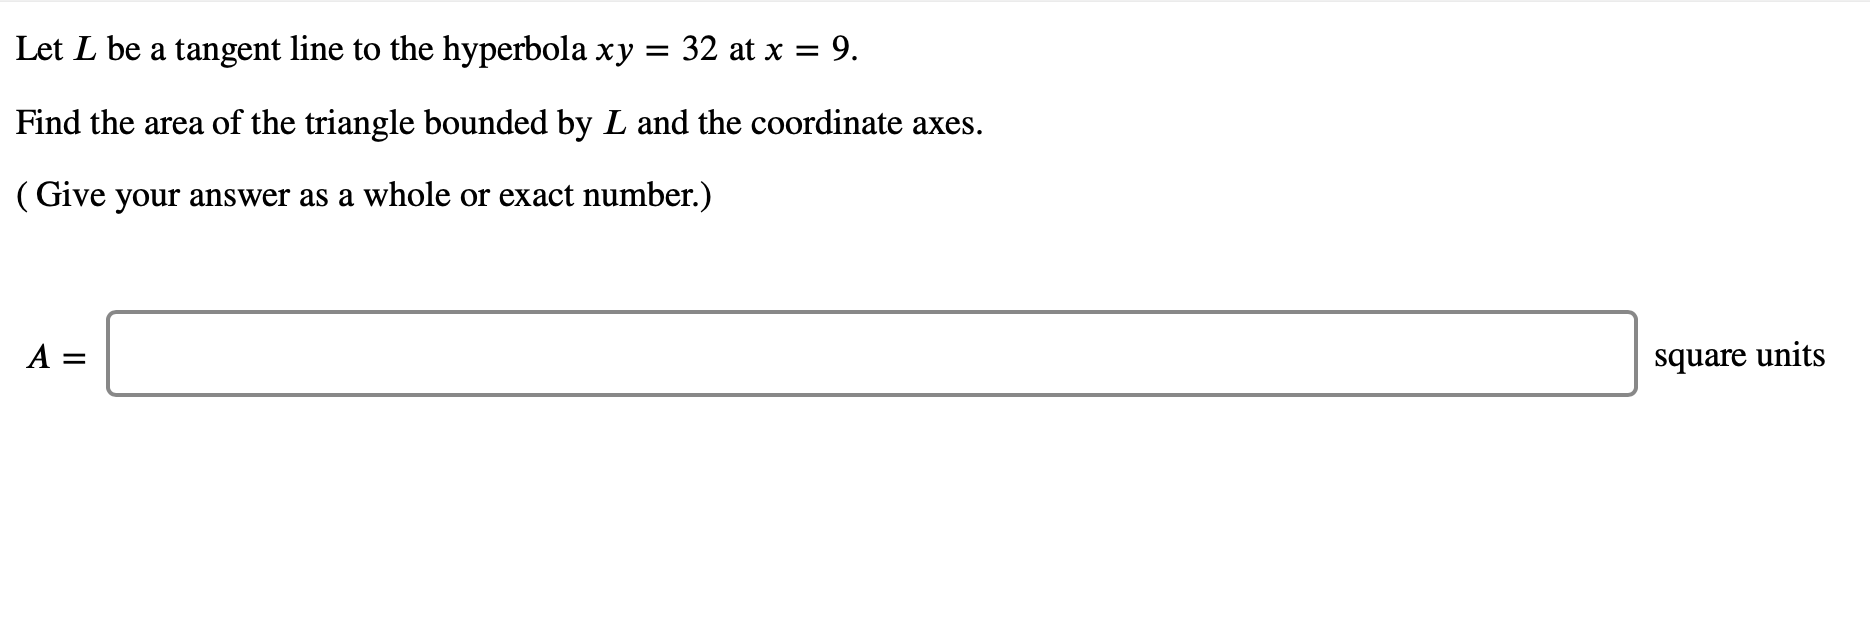 32 at x 9 Let L be a tangent line to the hyperbola xy Find the area of the triangle bounded by L and the coordinate axes (Give your answer as a whole or exact number.) A = square units